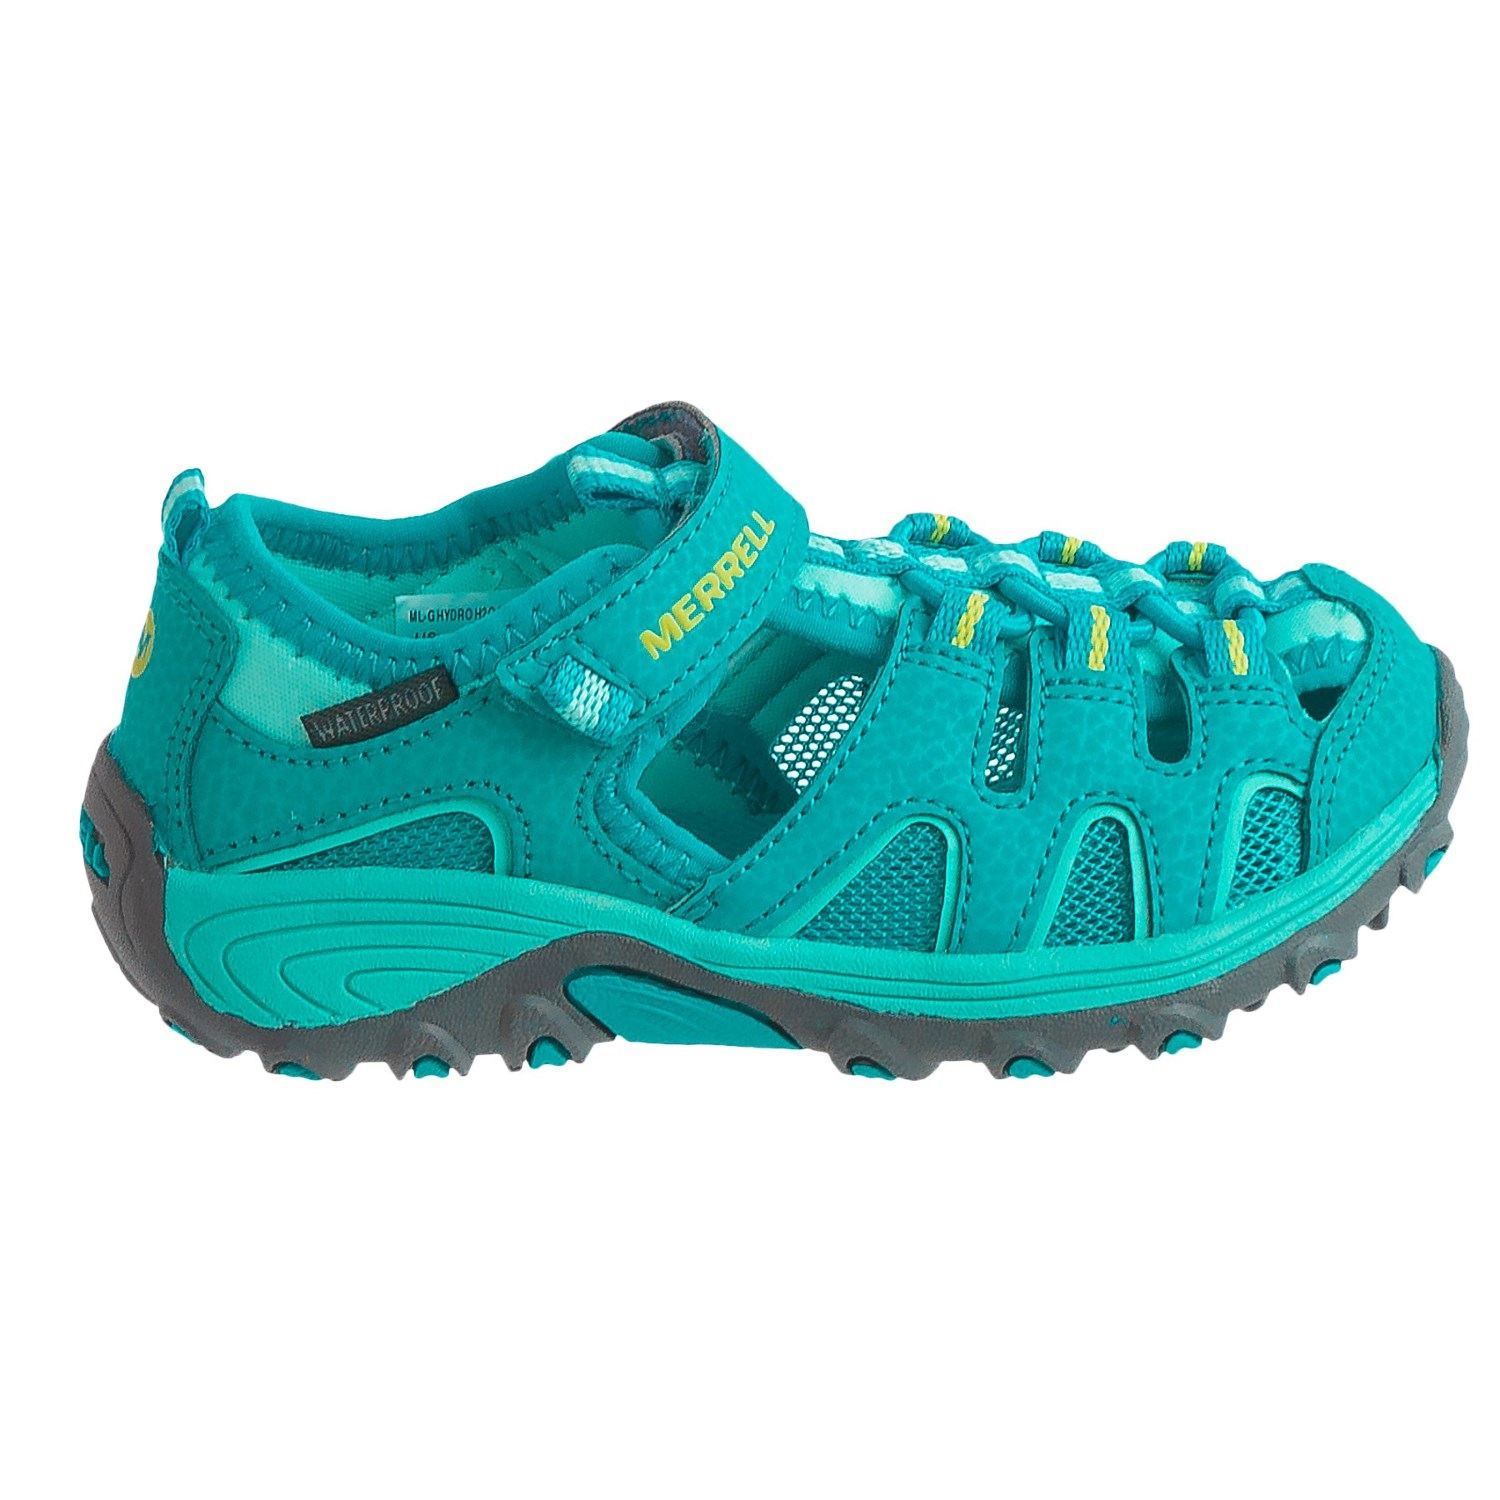 ... Merrell Hydro H2O Hiker Sandals (For Little and Big Girls) release date  4ccce e296e ... 2c1deda201